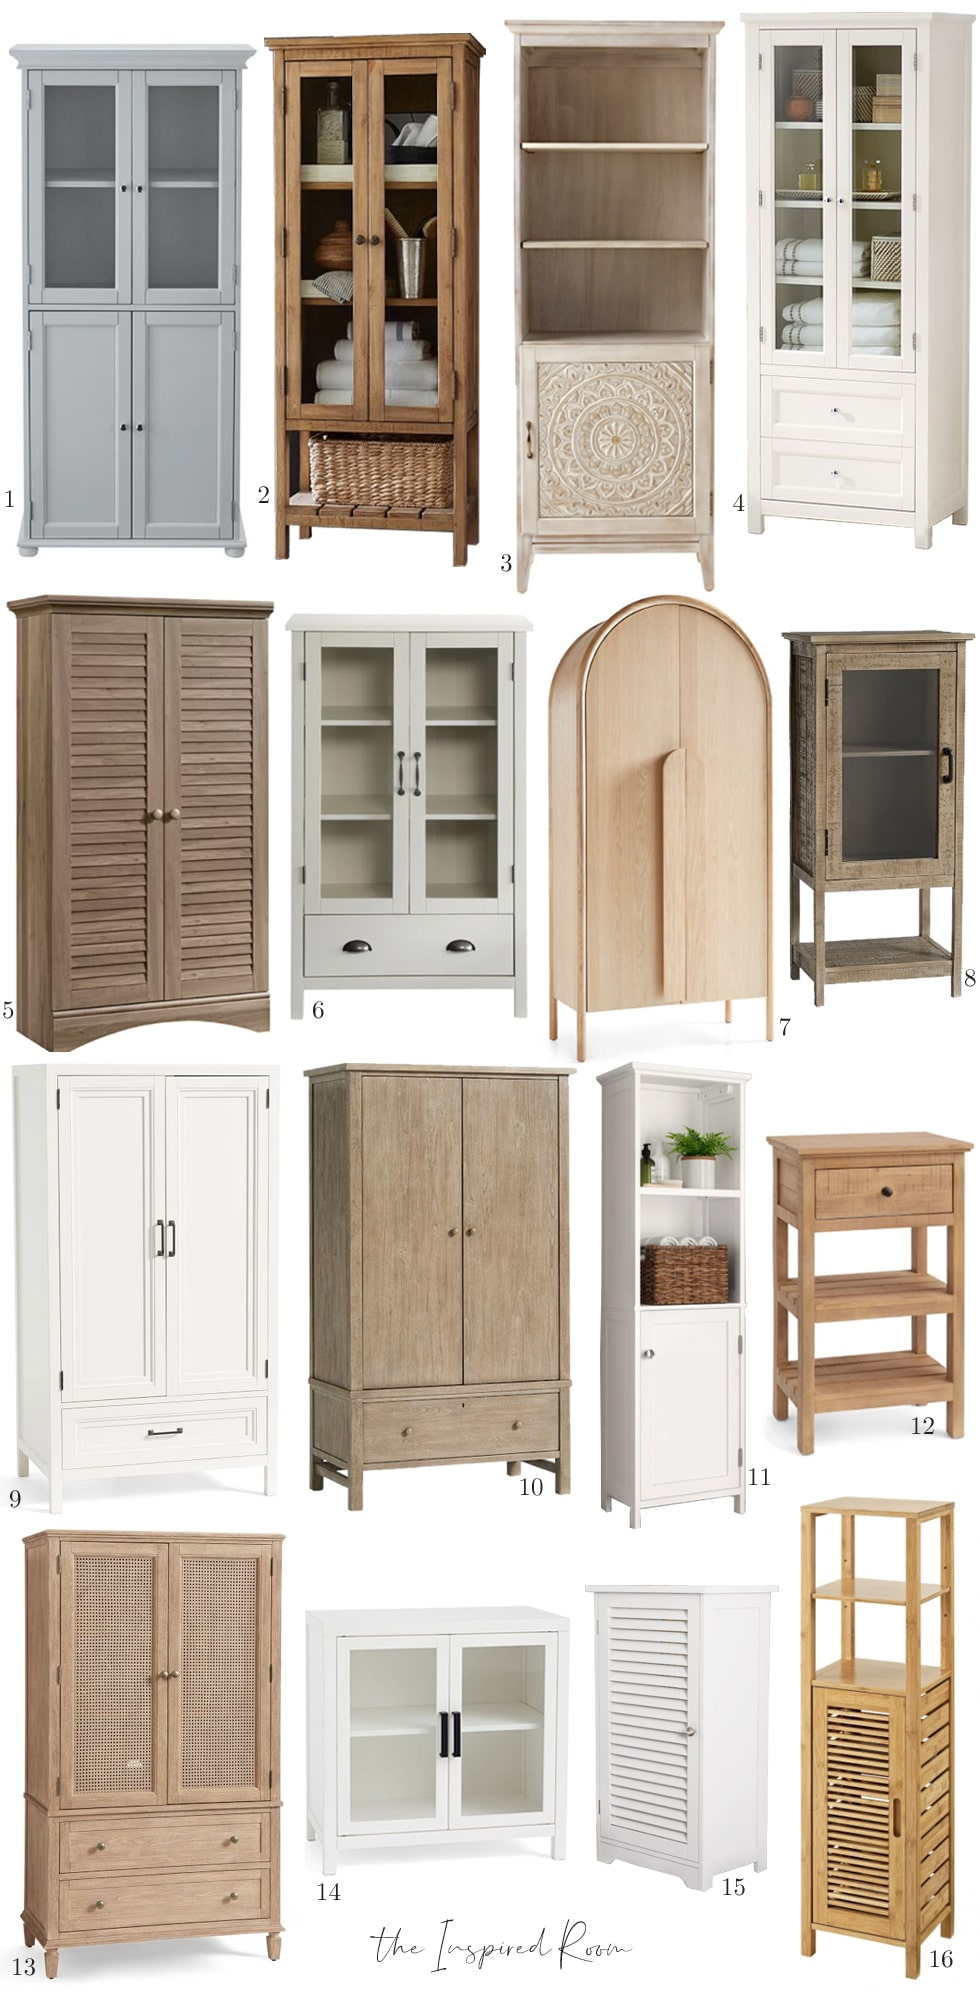 Storage Cabinets for Linens and Things